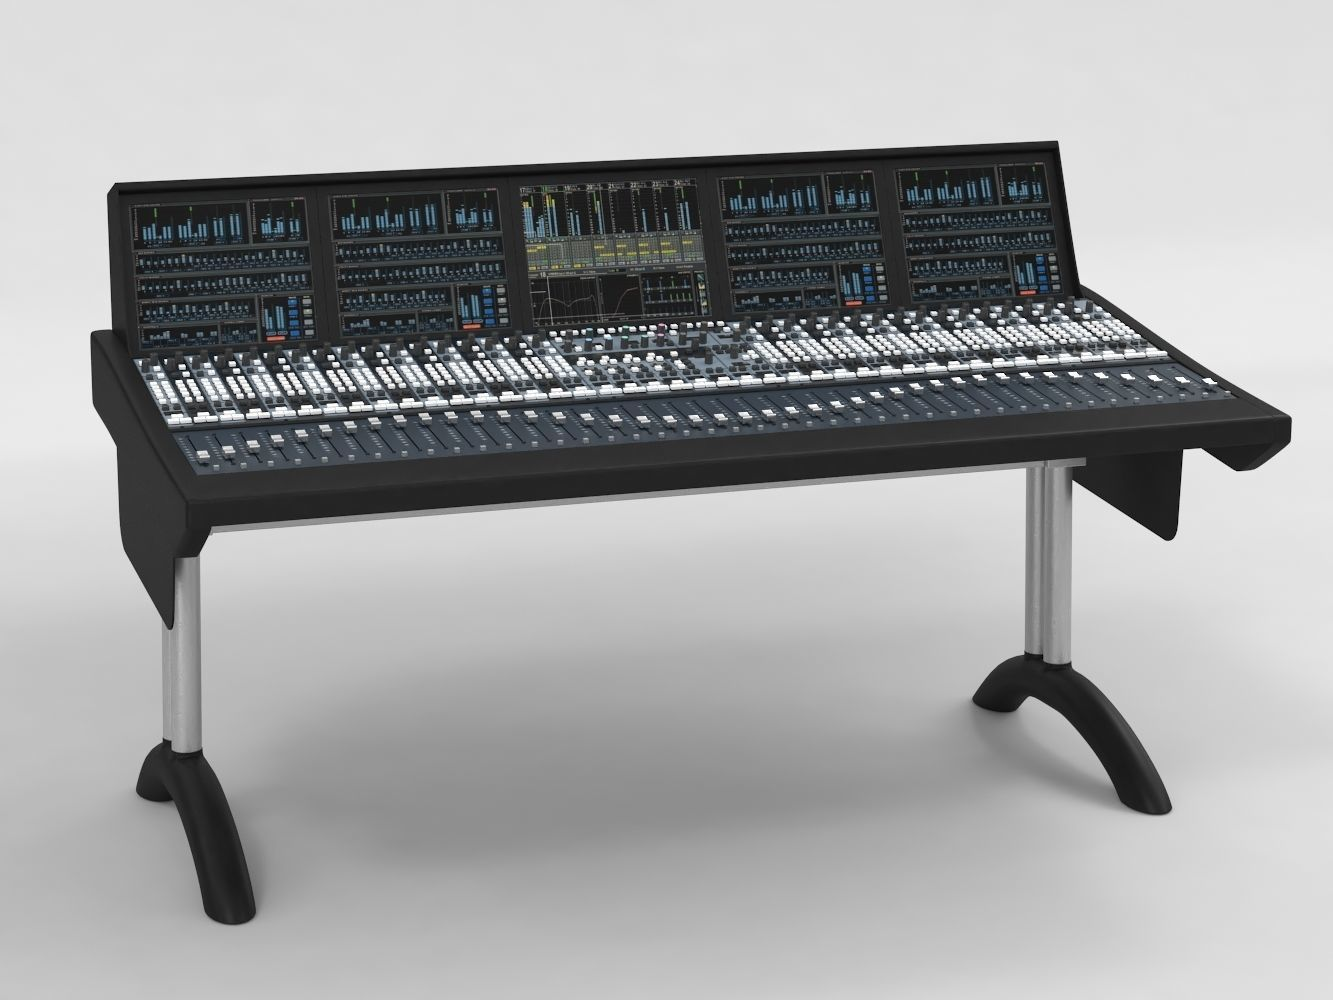 Solid State Logic SSL C10 HD Digital Broadcast Console